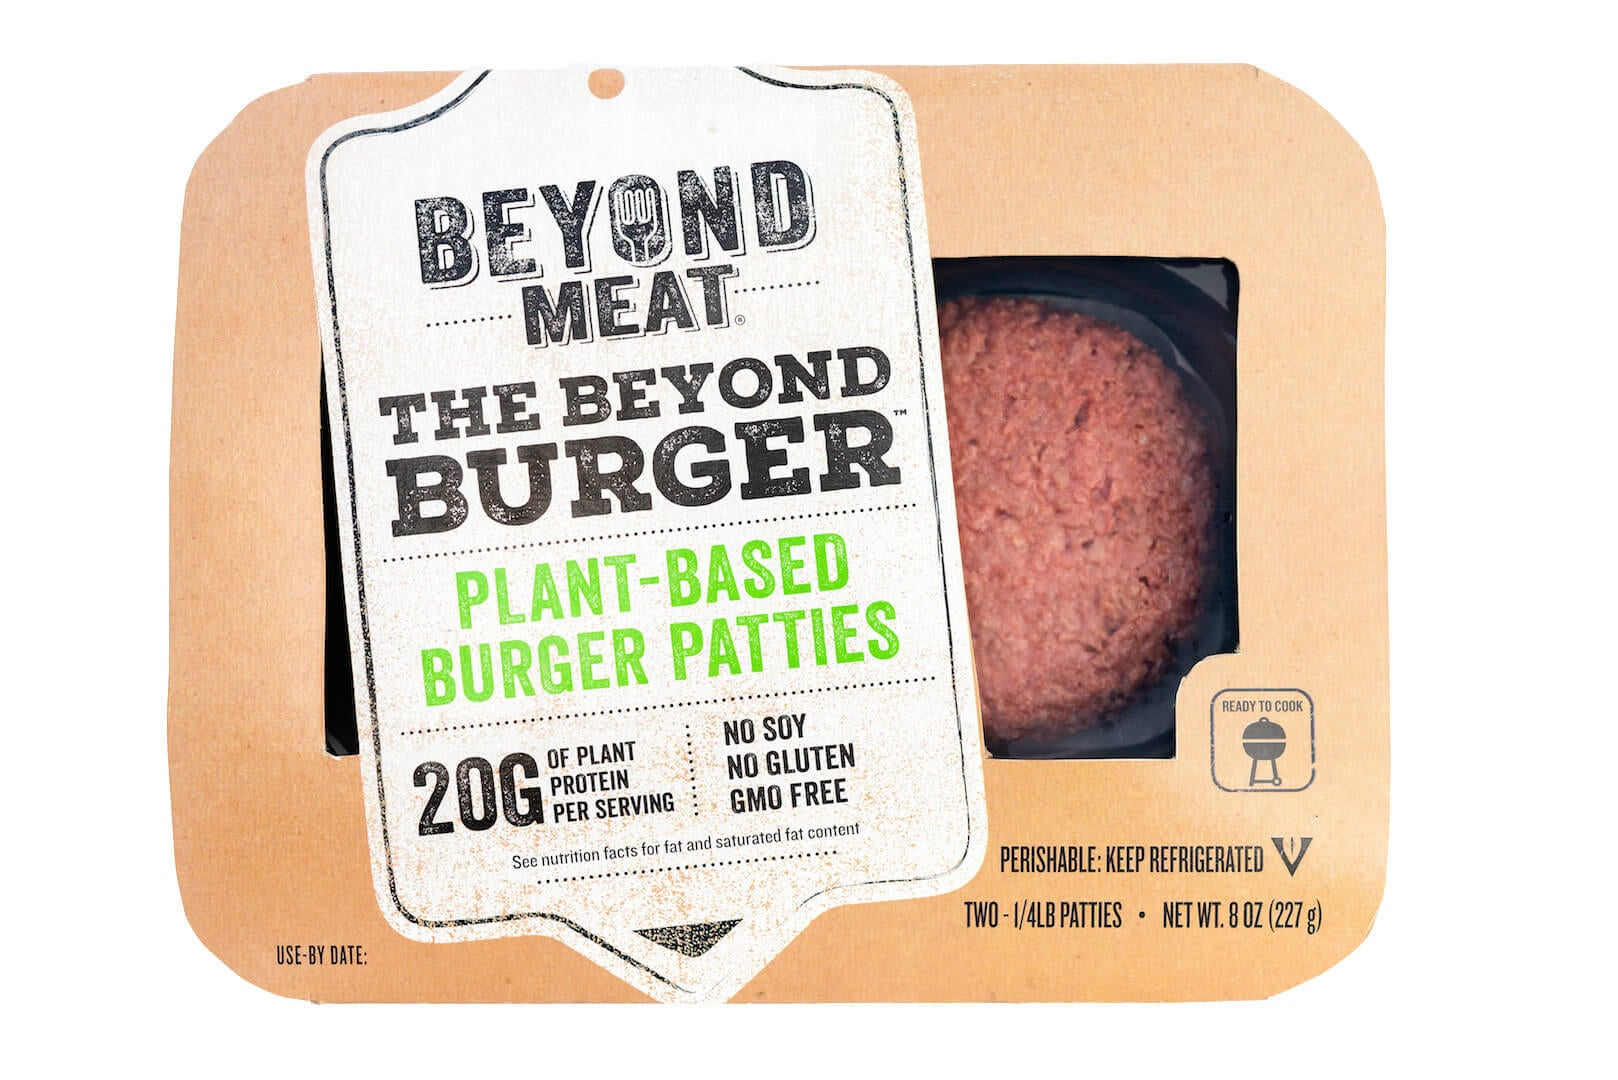 Food for Thought: How the 'Beyond Burger' is Changing the Fast-Casual Restaurant Industry